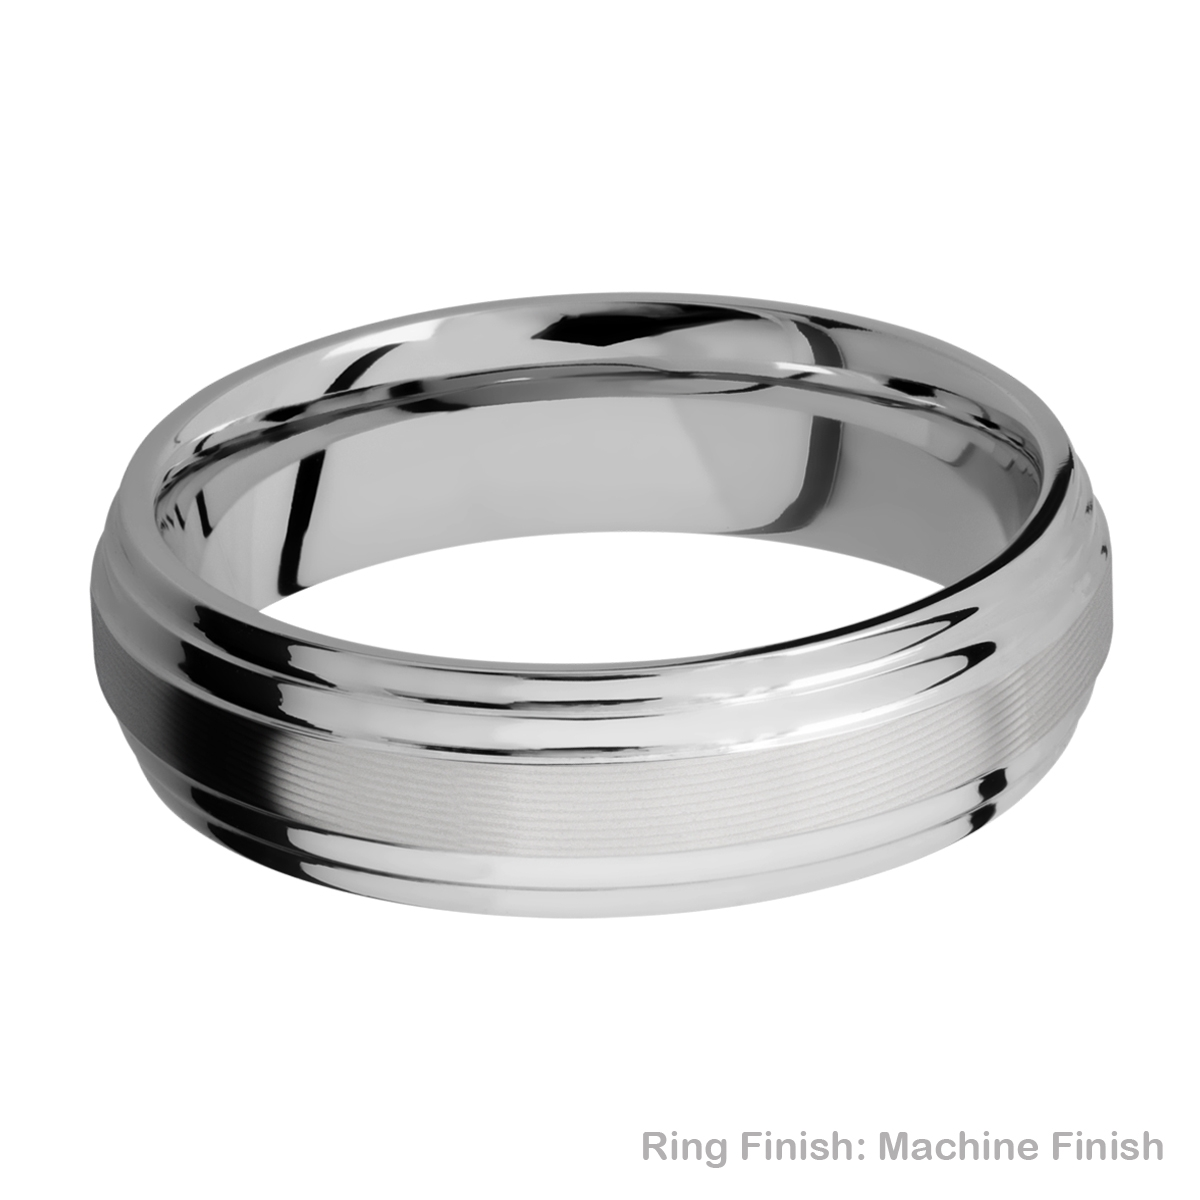 Lashbrook 6F2S Titanium Wedding Ring or Band Alternative View 15